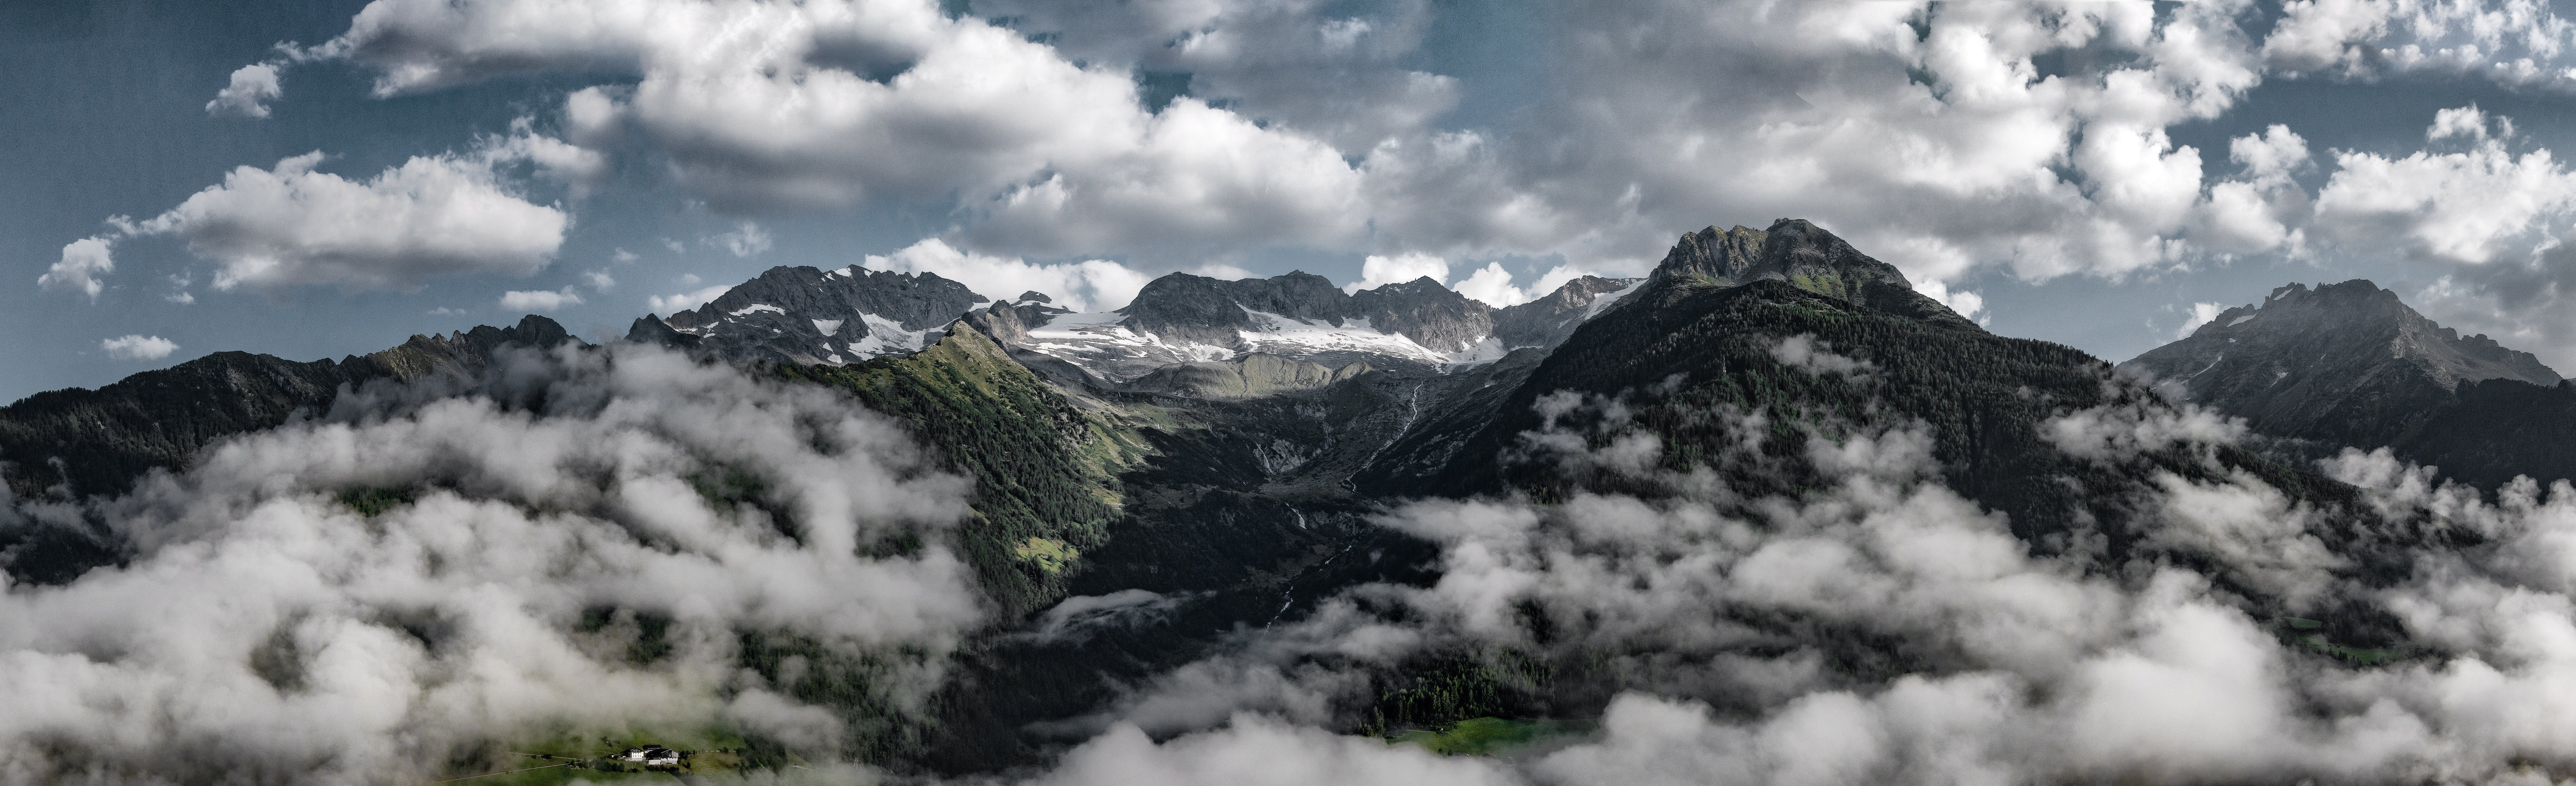 Aerial View of Mountain Covered in Clouds